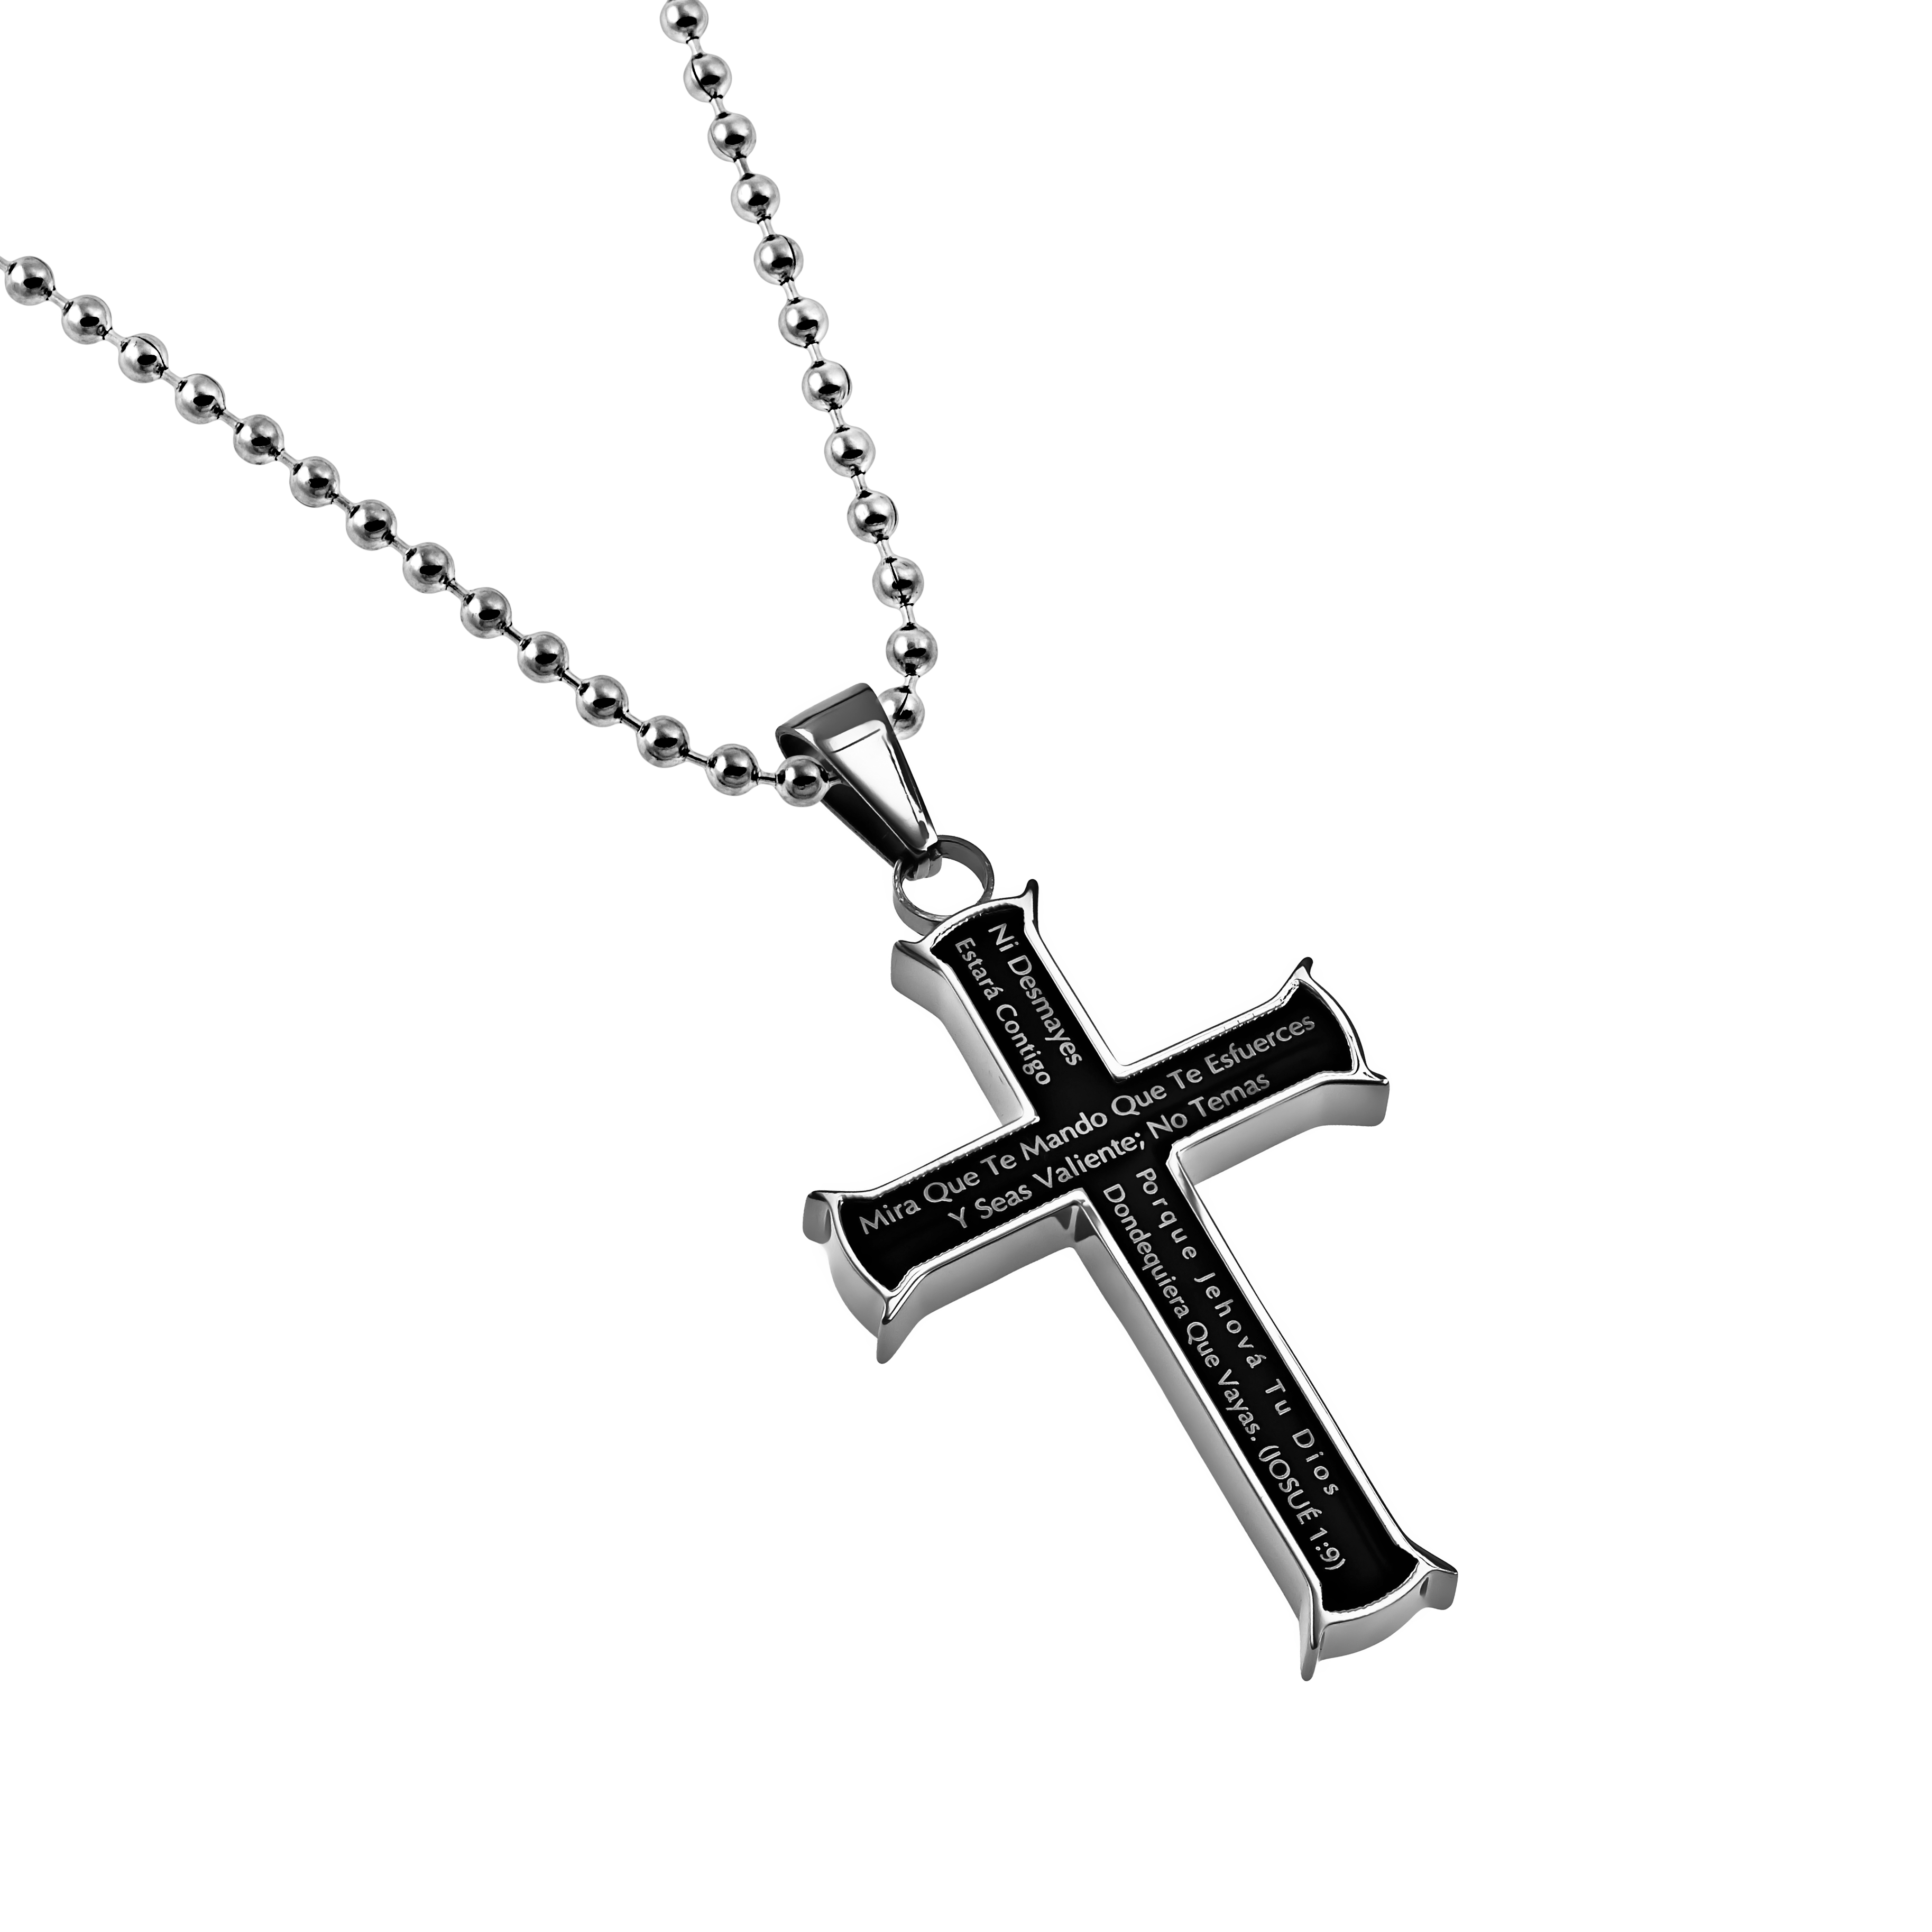 Courage Black Iron Cross Necklace